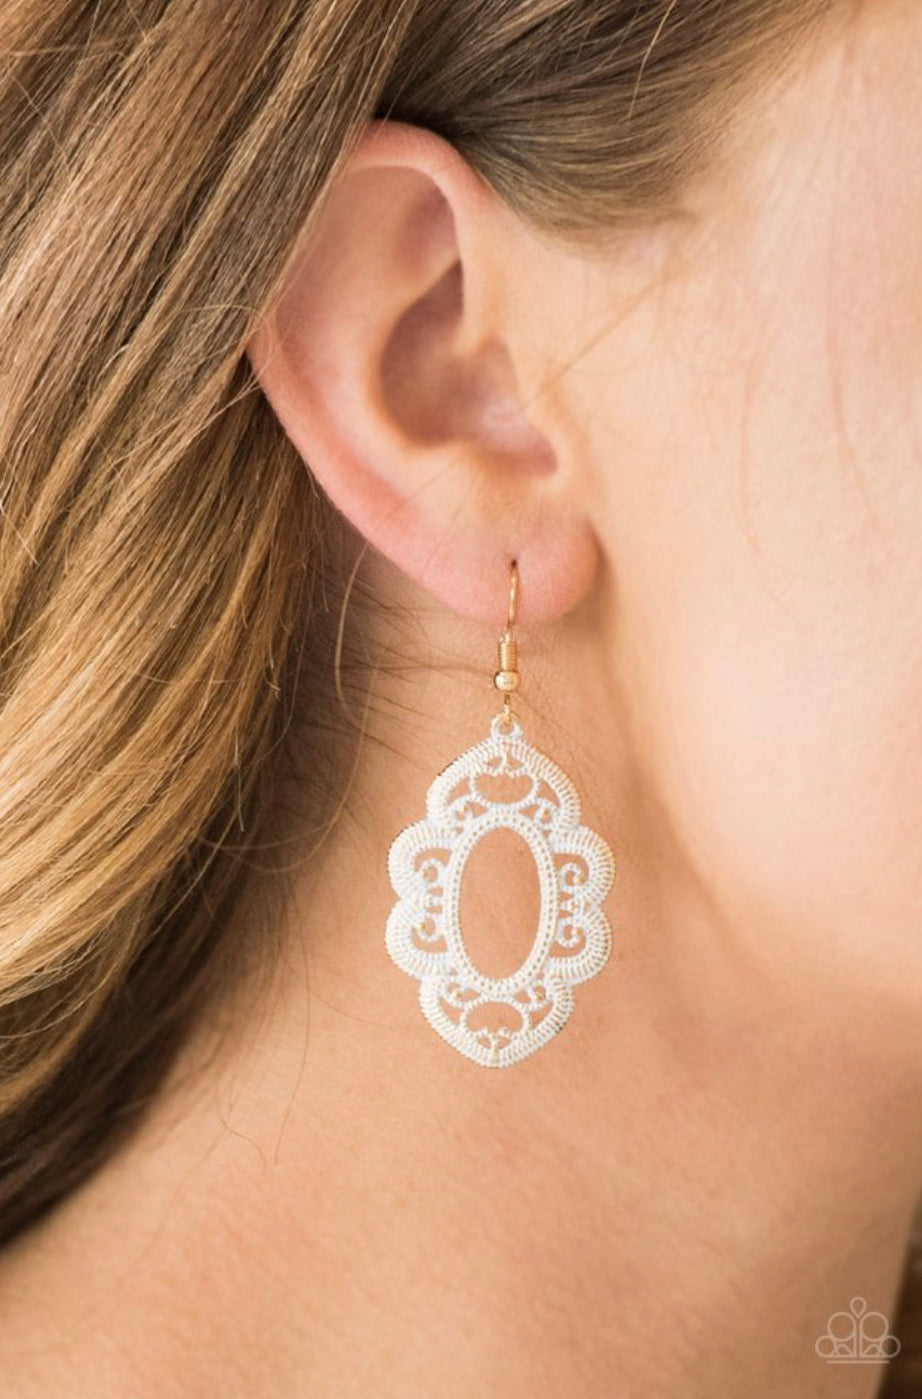 Paparazzi Mantras and Mandalas - Gold Earrings